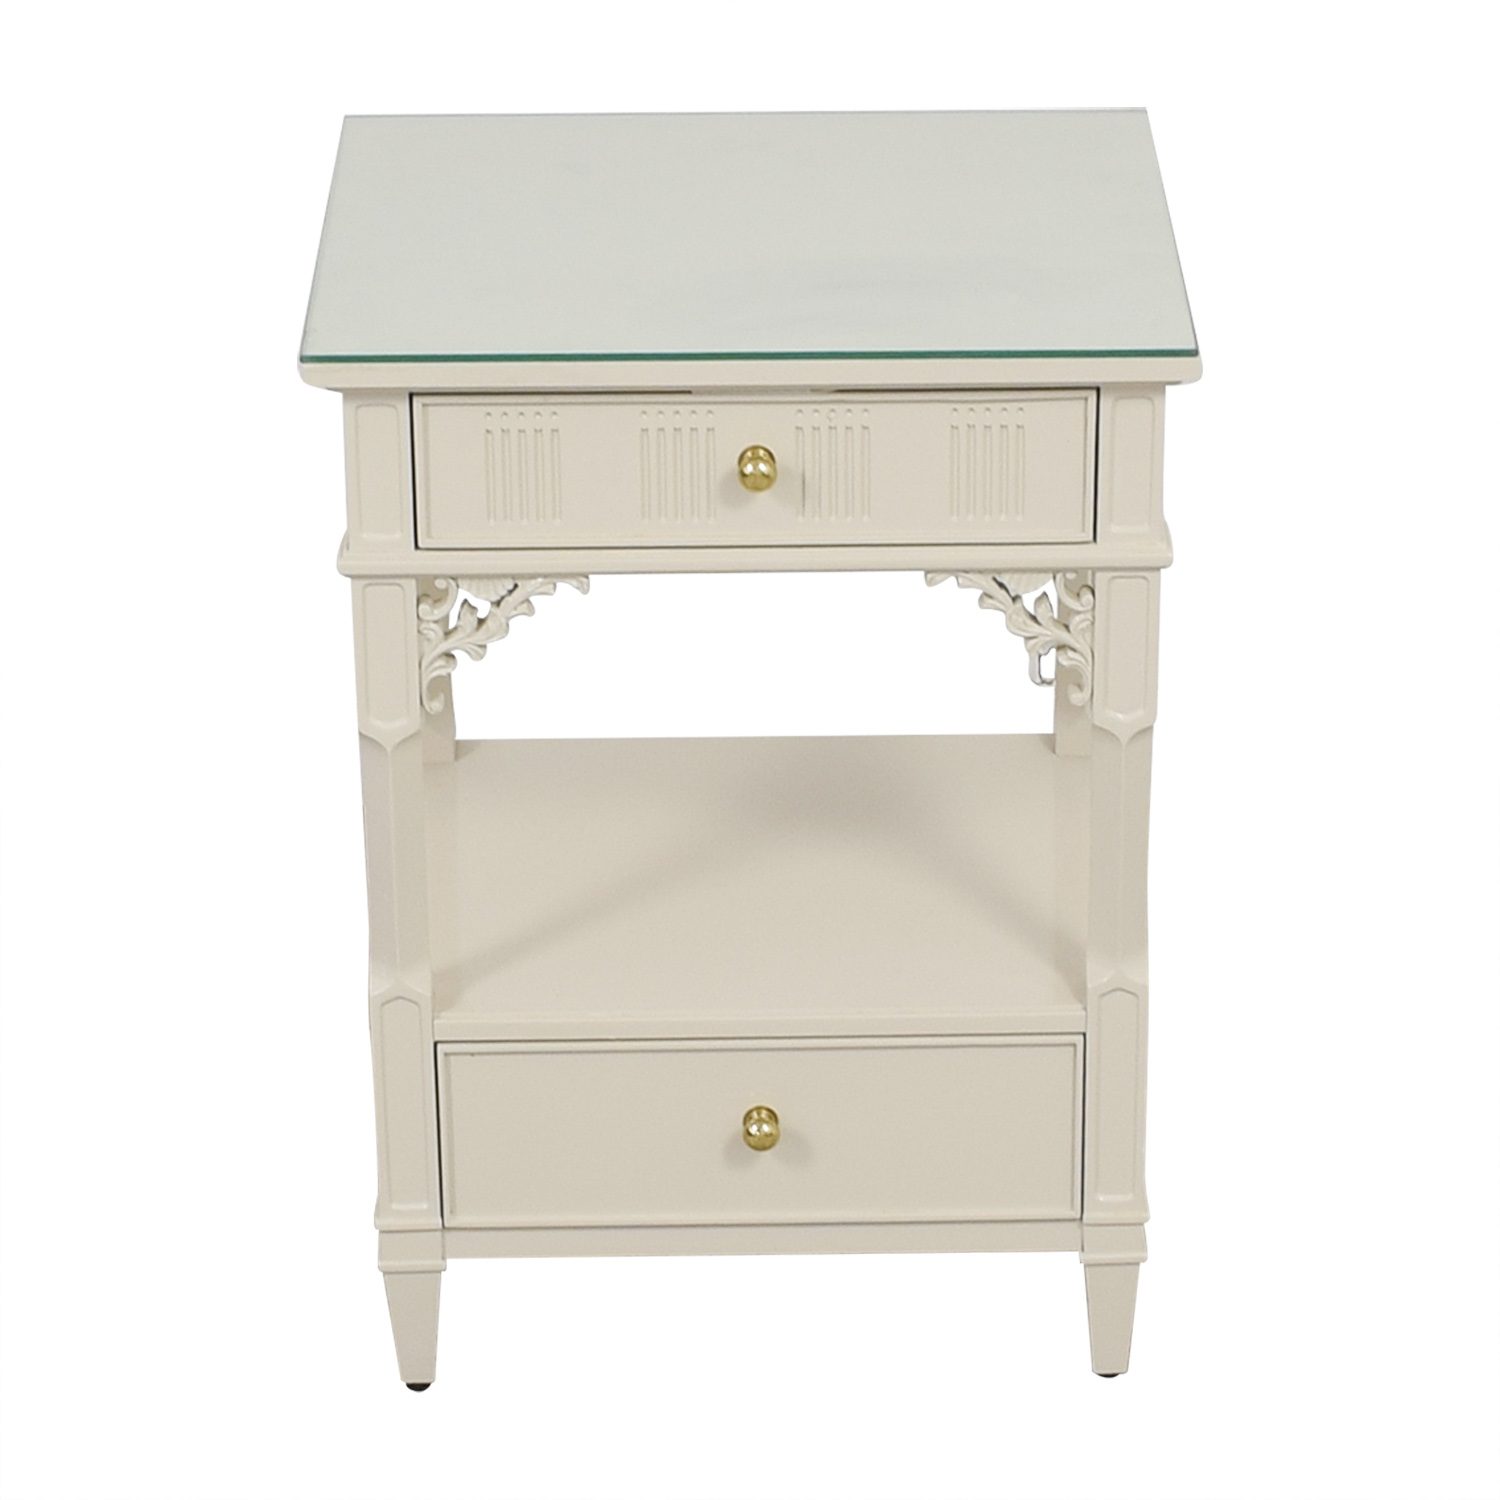 off stanley furniture white telephone side table used end tables second hand trundle inch console log cabinets glass occasional sets thomasville pecan bedroom rustic storage pet